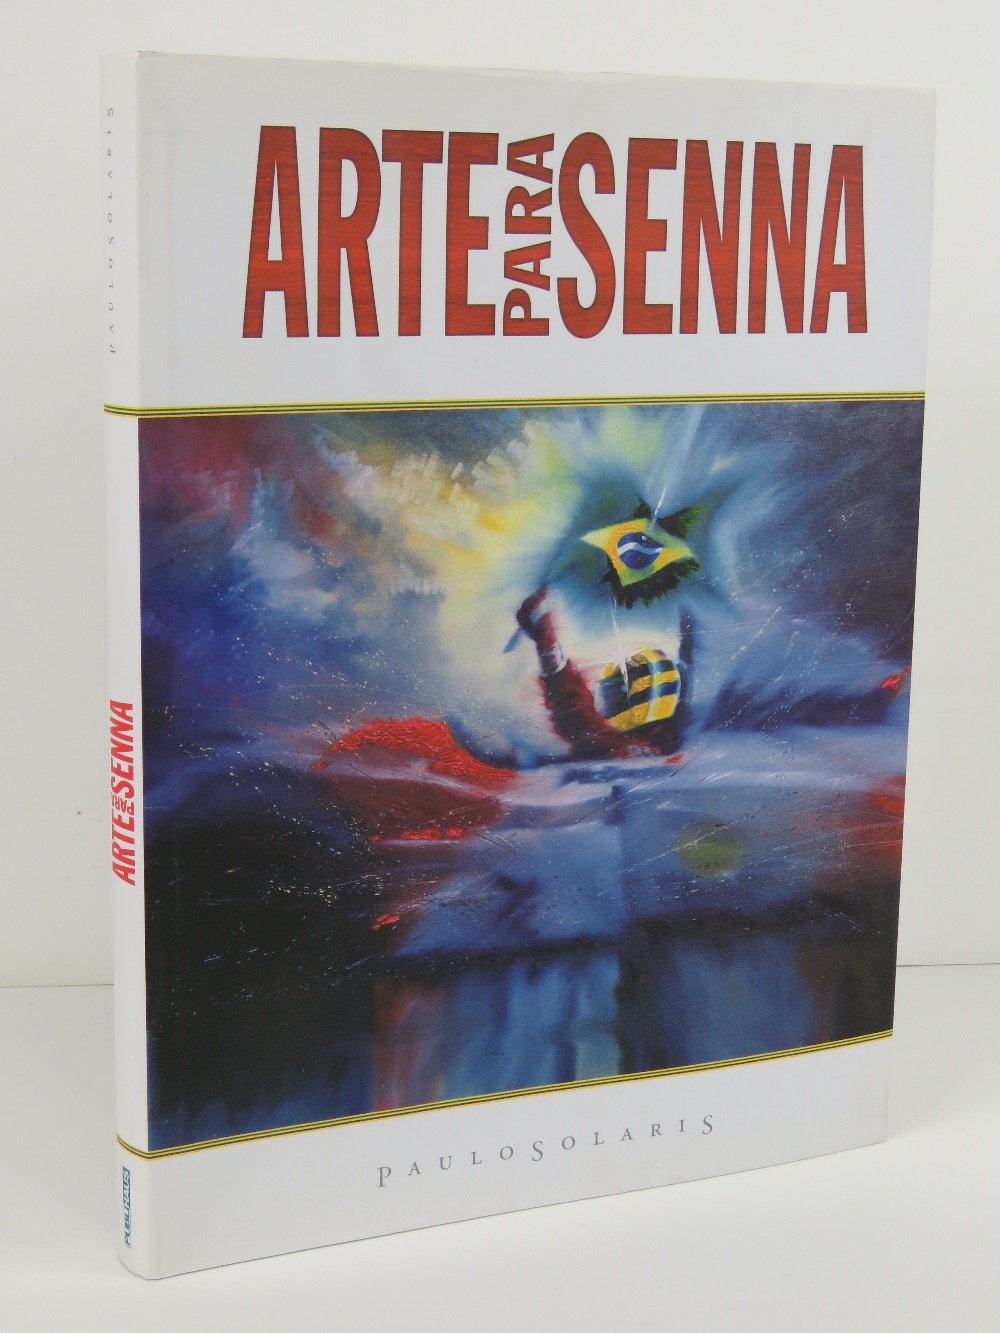 Arte Para Senna (Art for Senna) by Paulo Solaris, Portuguese edition, published 2004. Hardback book.